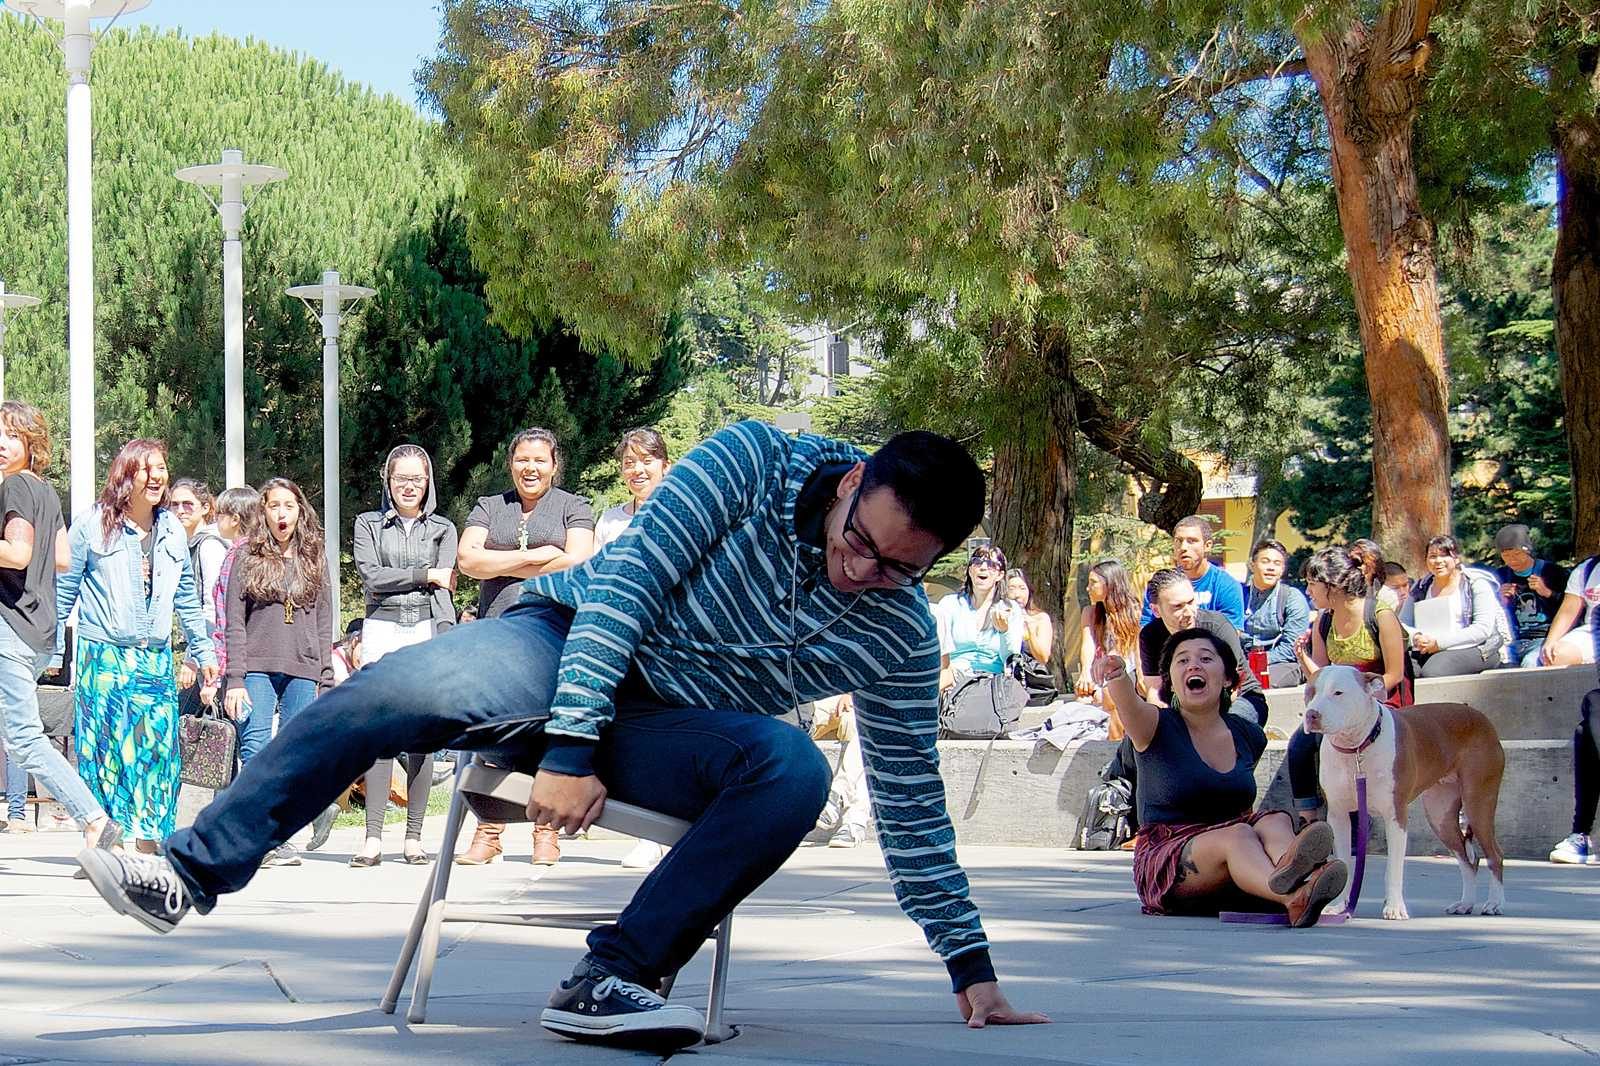 Javier Morelos Garza grabs the final seat during musical chairs at the La Raza Student Organization's festival in Malcolm X Plaza Sept 18, 2013. Photo by Kate O'Neal / Xpress